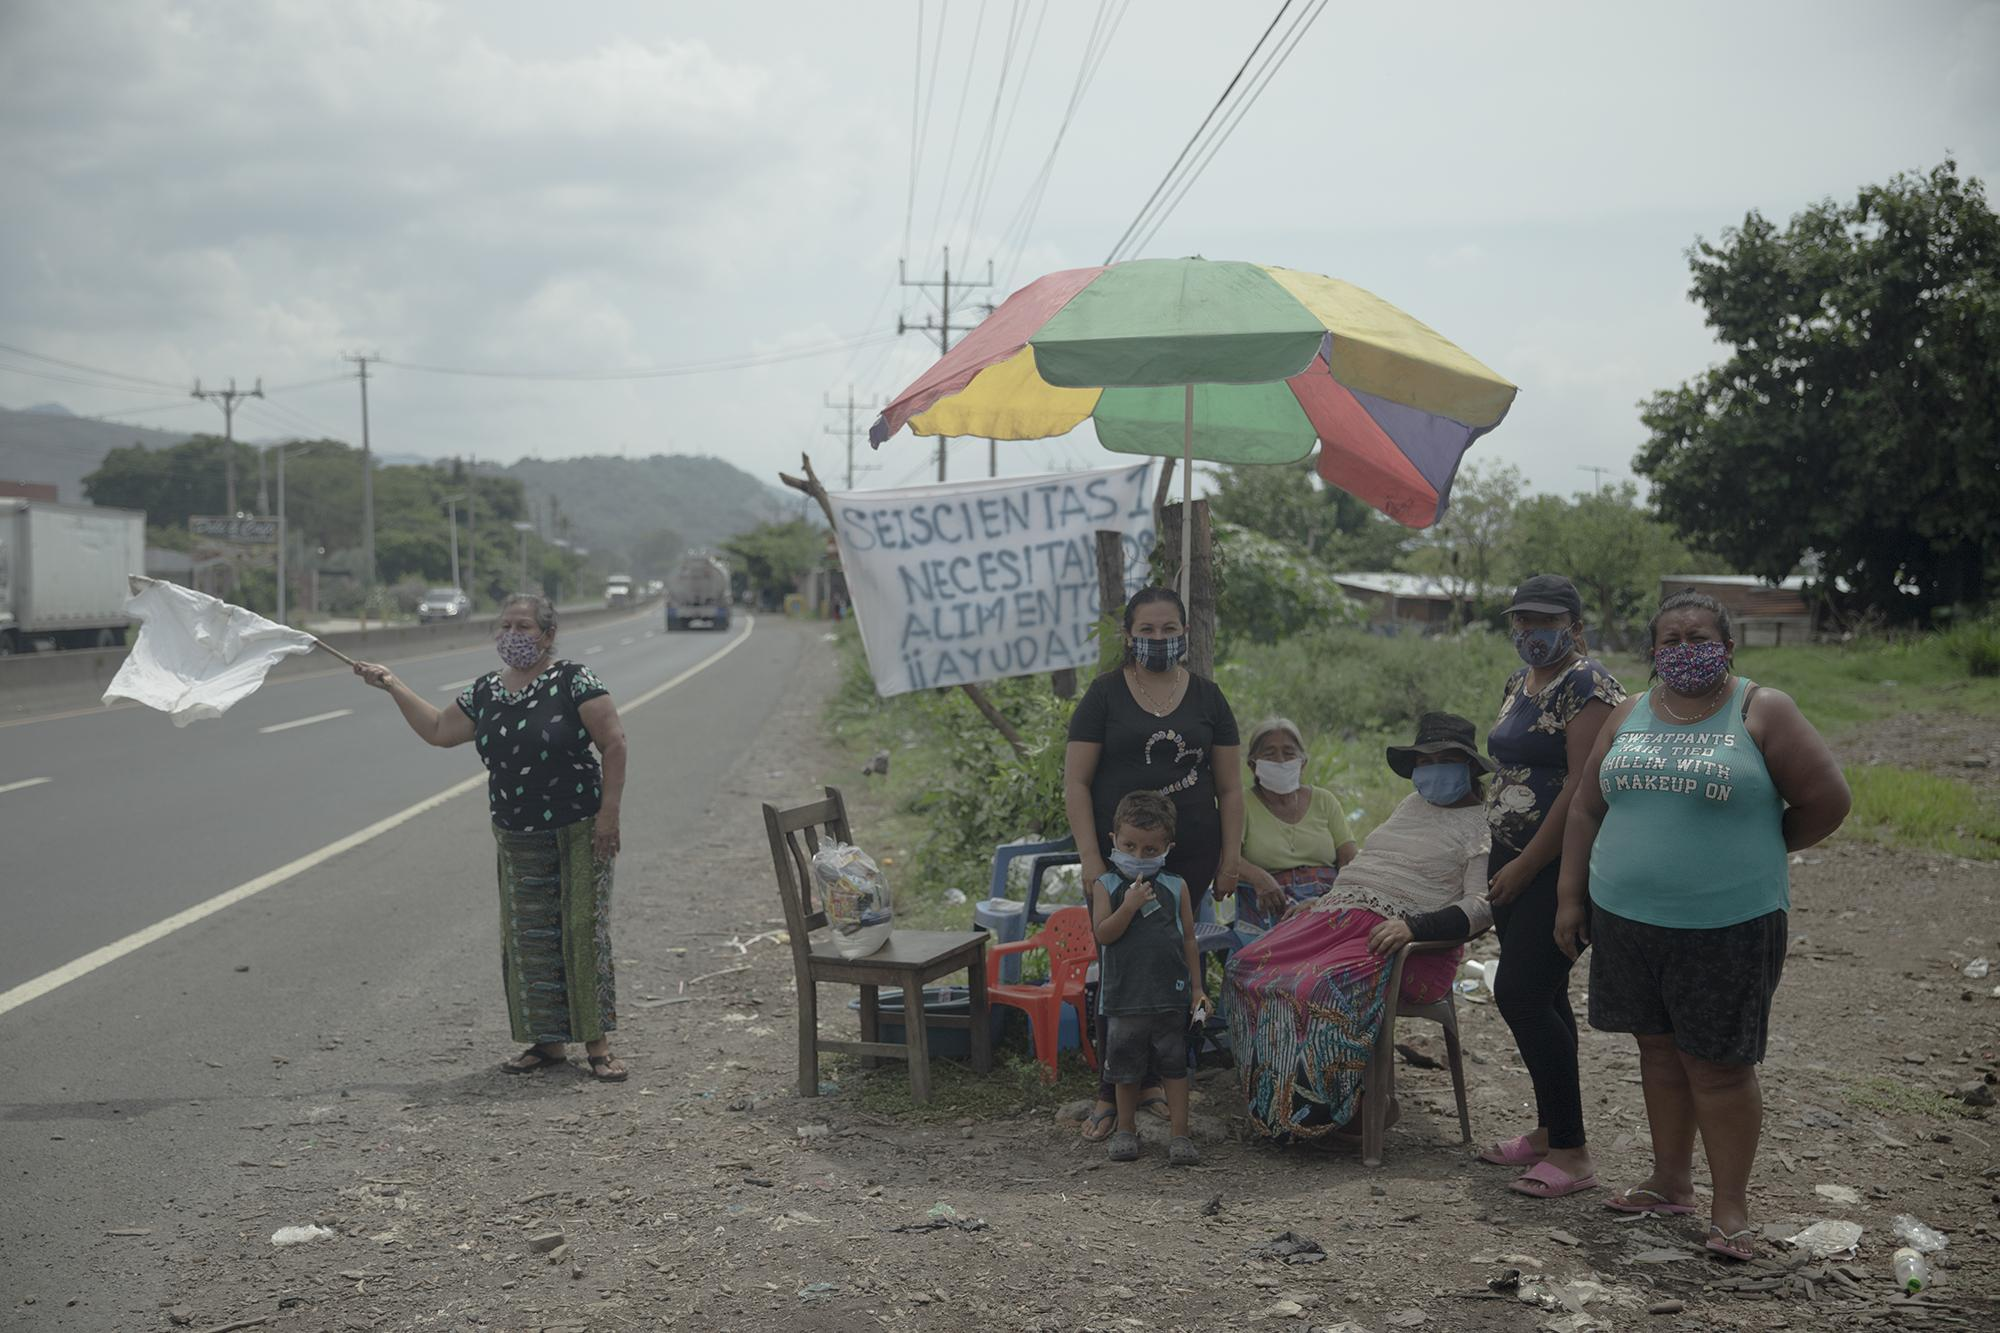 Every day since the start of the quarantine, families in the roadside community Las Seiscientas Uno (The Six-O-One) stand by the highway toward Sonsonate, in the municipality of Colón, La Libertad, asking for food from passersby. Photo: Carlos Barrera/El Faro